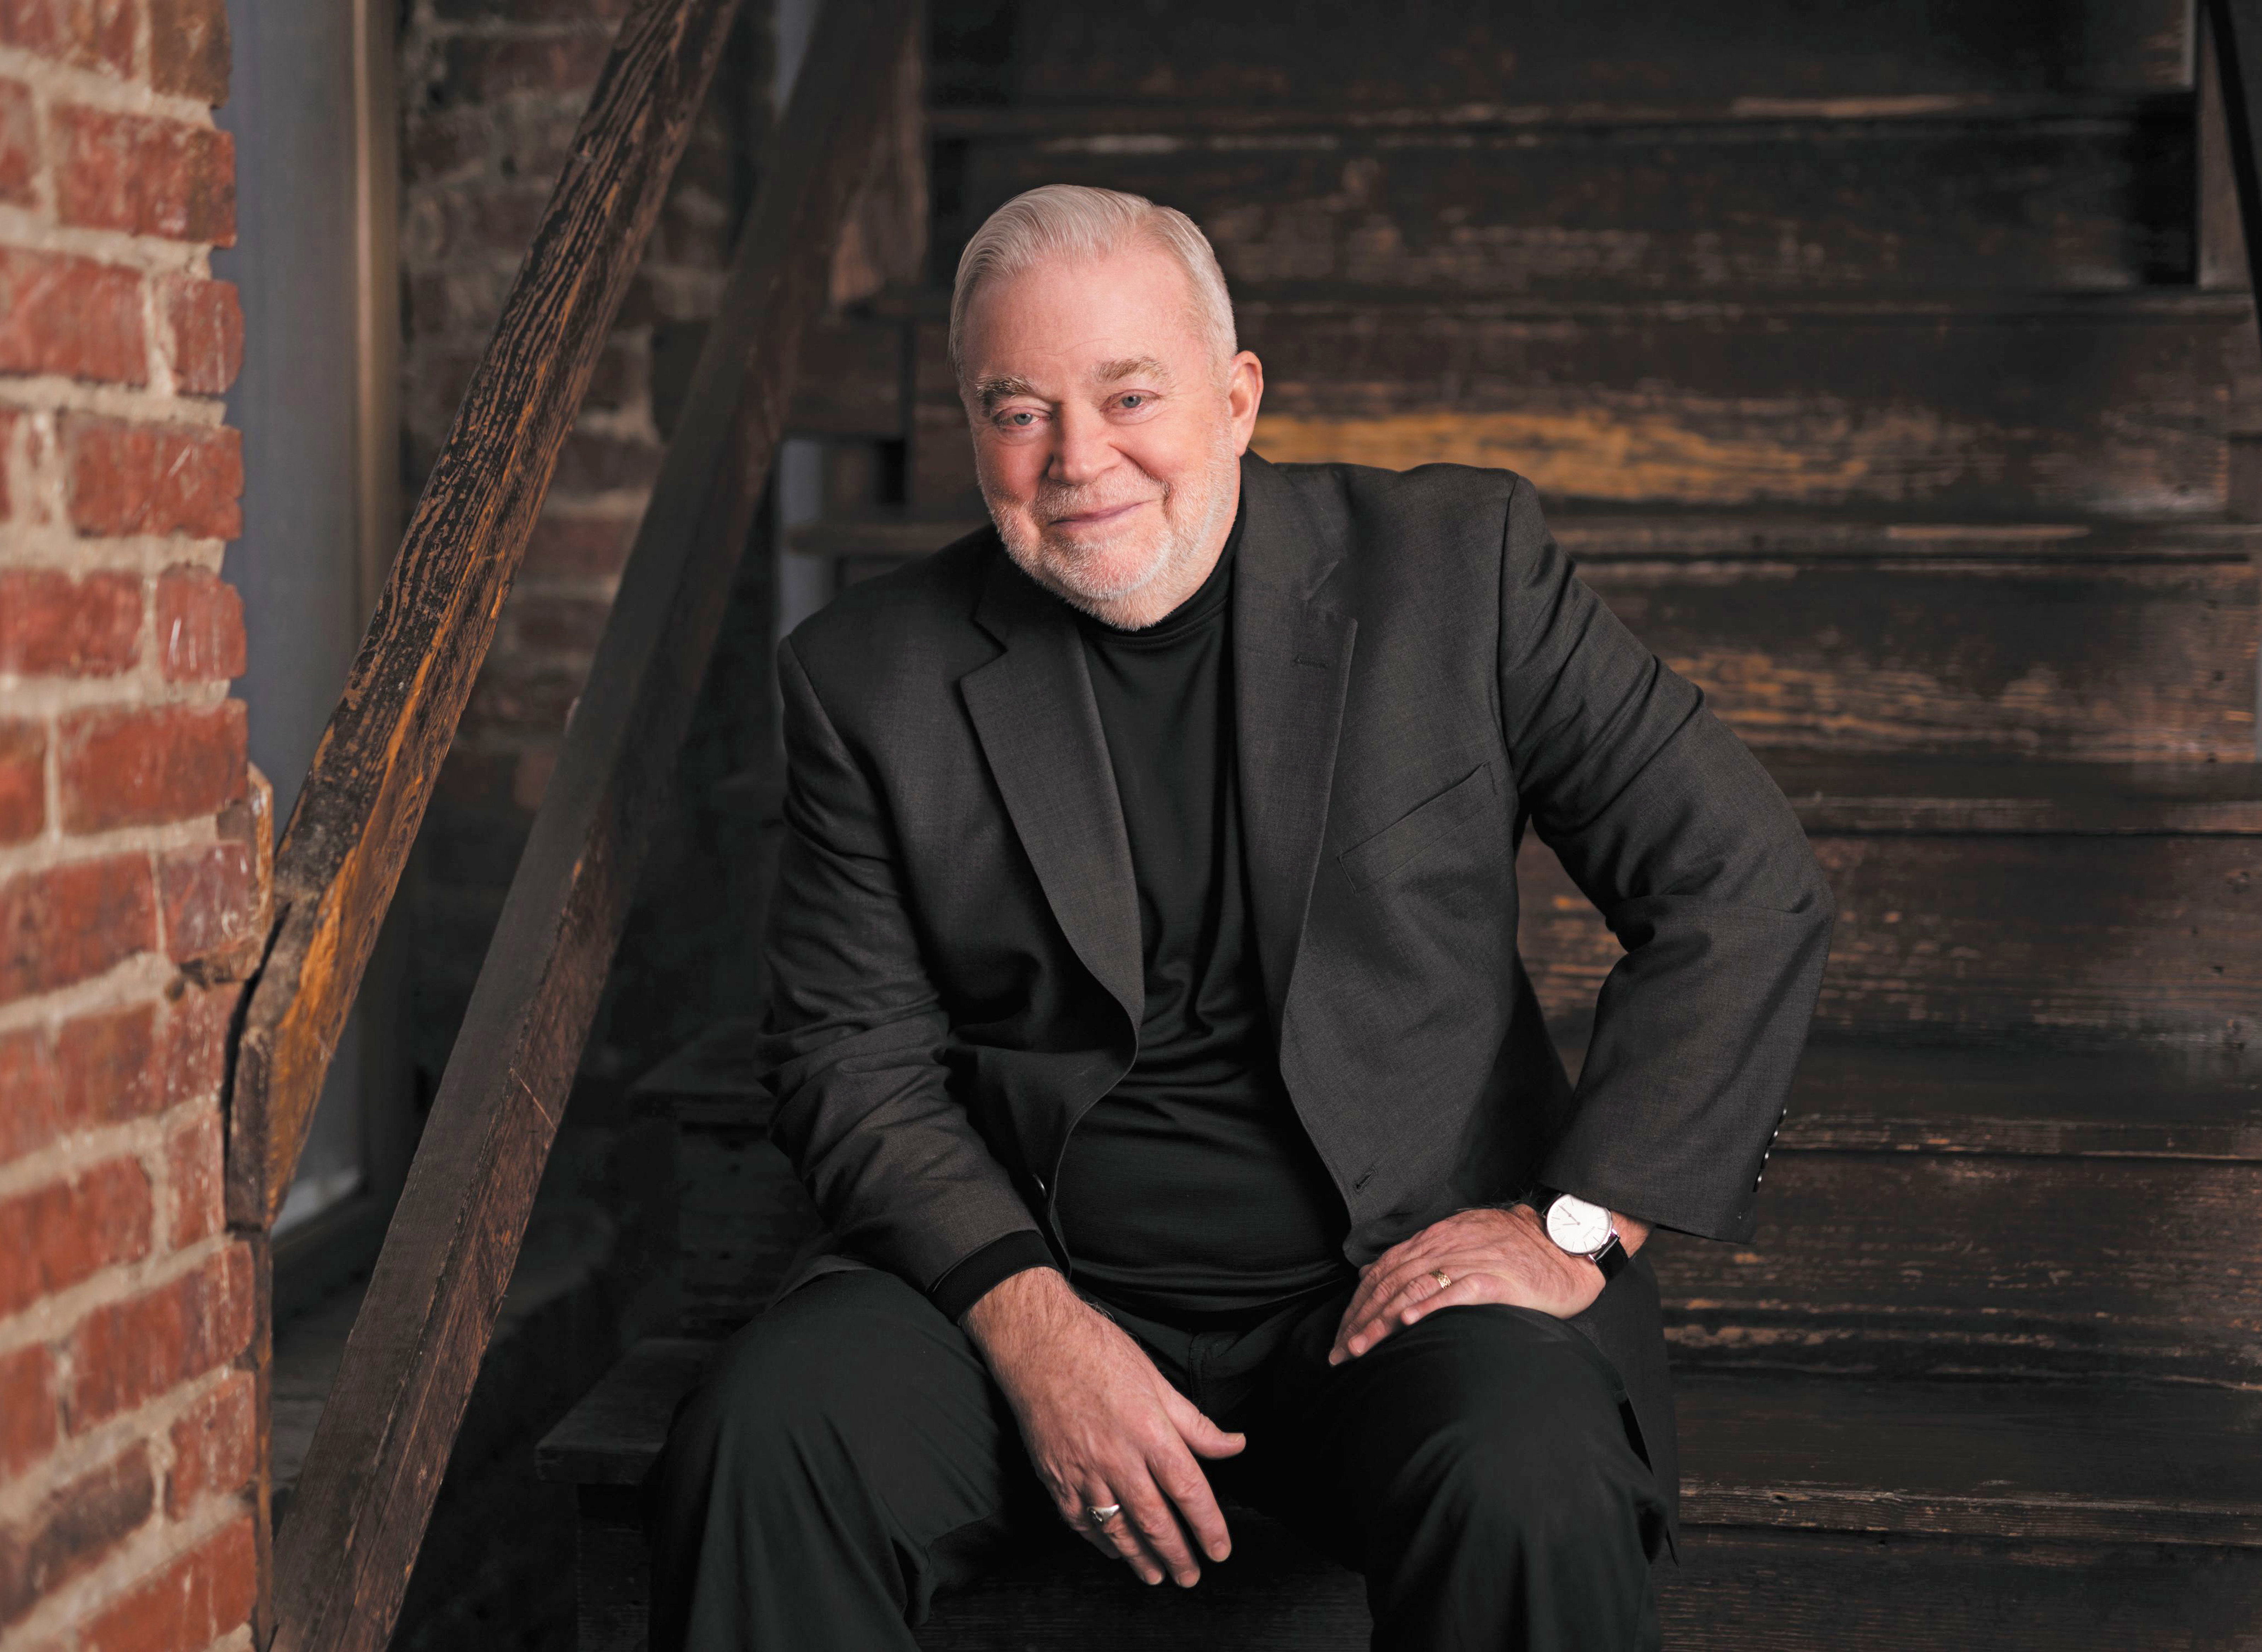 Rev. Jim Wallis, activist and author.